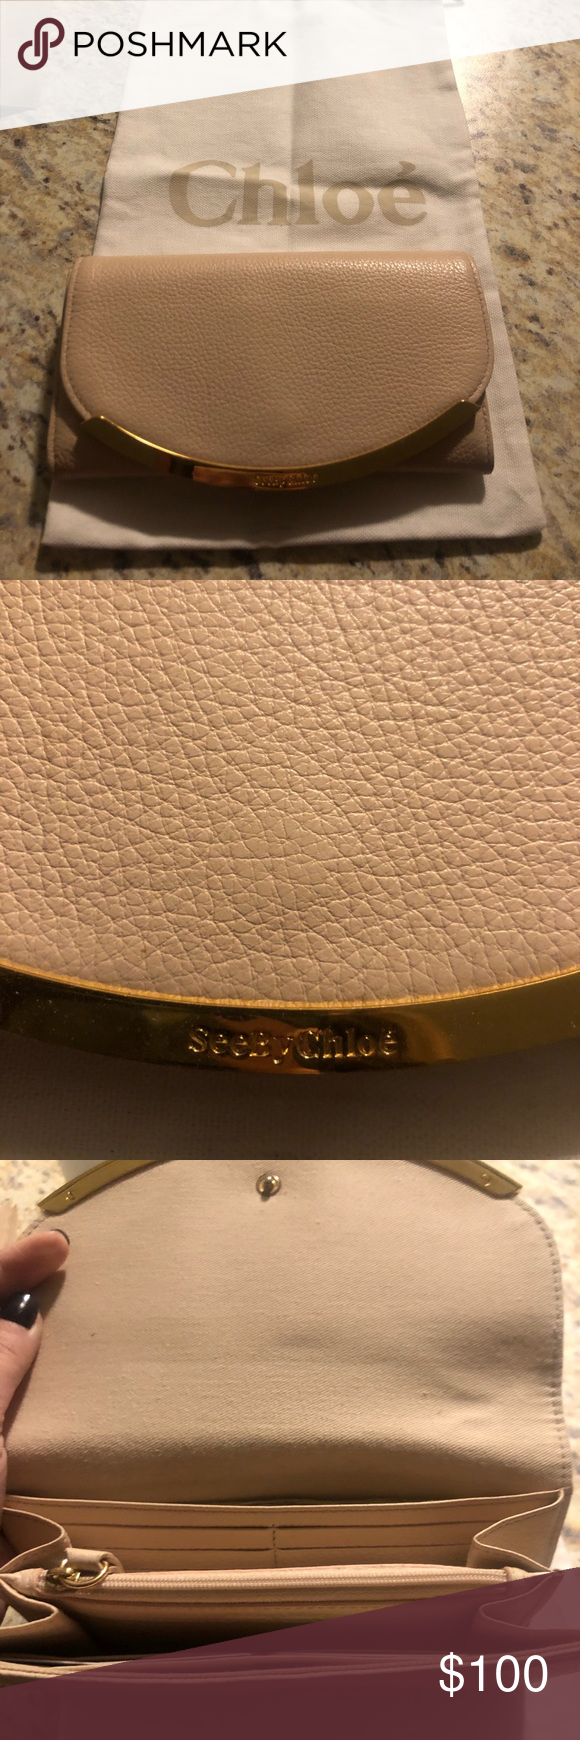 See by Chloe Wallet gently used Barely used, light pink/cream color See By Chloe Bags Wallets #seebychloe See by Chloe Wallet gently used Barely used, light pink/cream color See By Chloe Bags Wallets #seebychloe See by Chloe Wallet gently used Barely used, light pink/cream color See By Chloe Bags Wallets #seebychloe See by Chloe Wallet gently used Barely used, light pink/cream color See By Chloe Bags Wallets #seebychloe